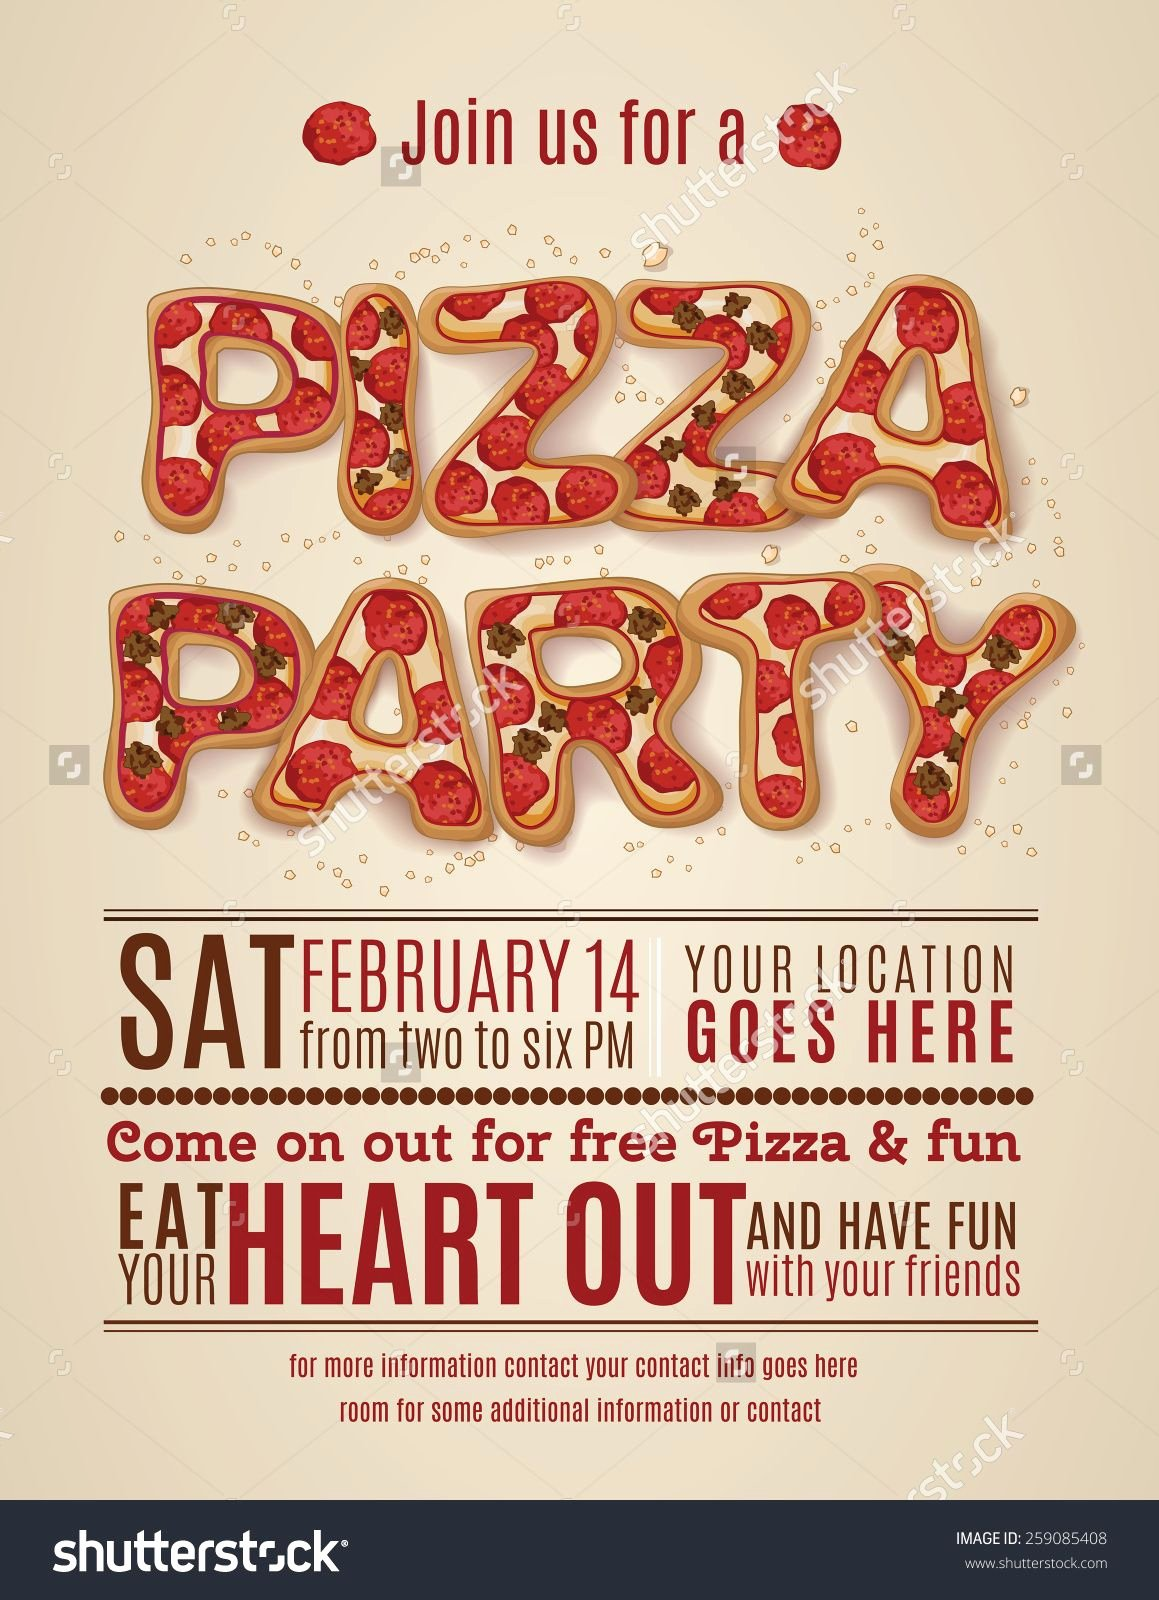 Pizza Party Invitation Template Fresh Pizza Party Invitation Template Free Invitation